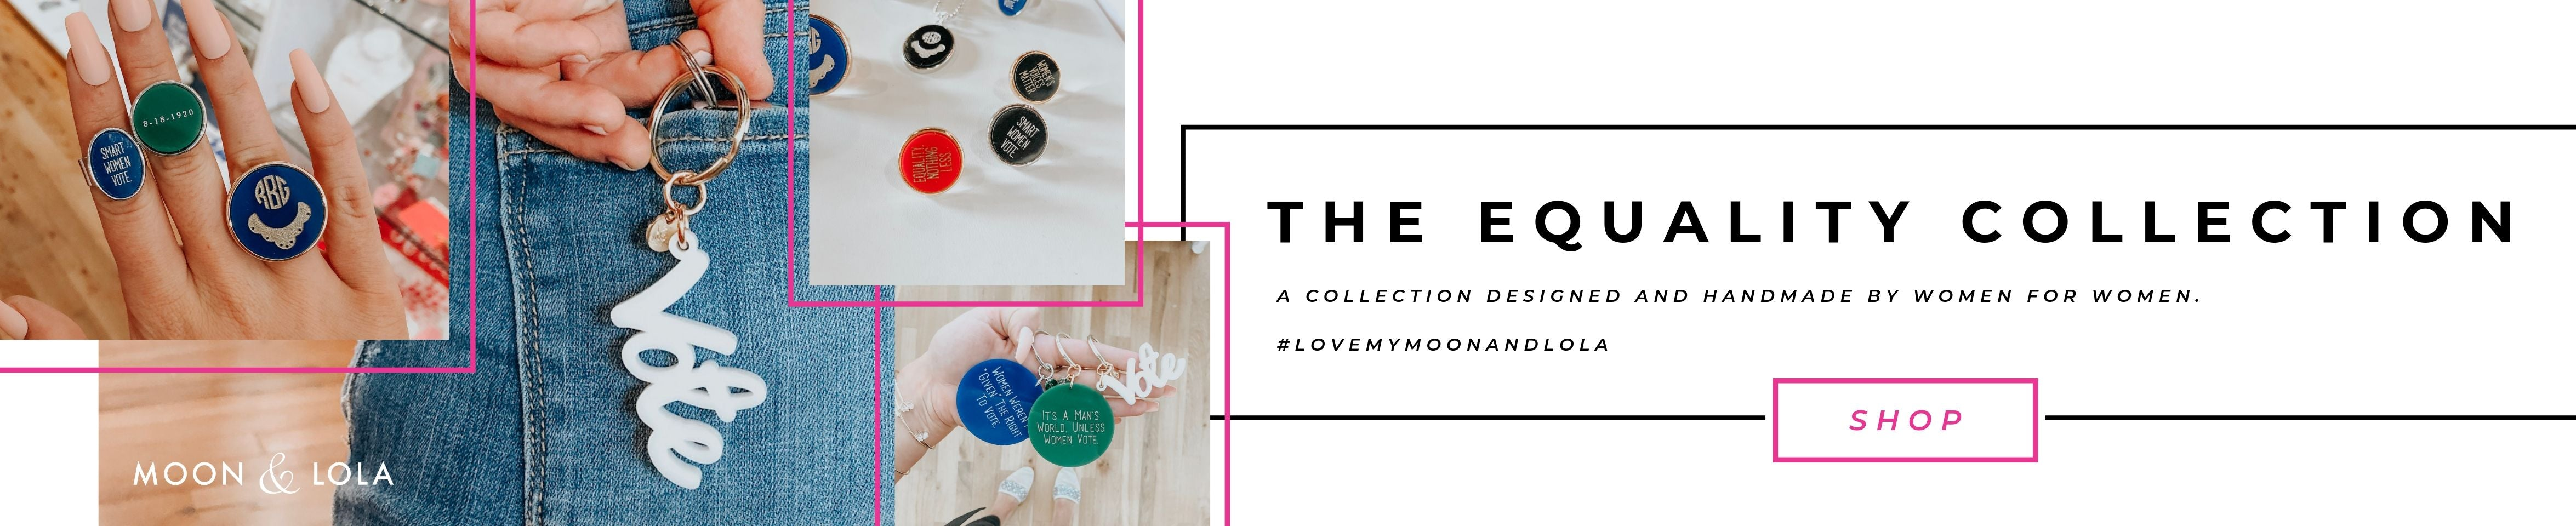 Moon and Lola - Equality For All Collection